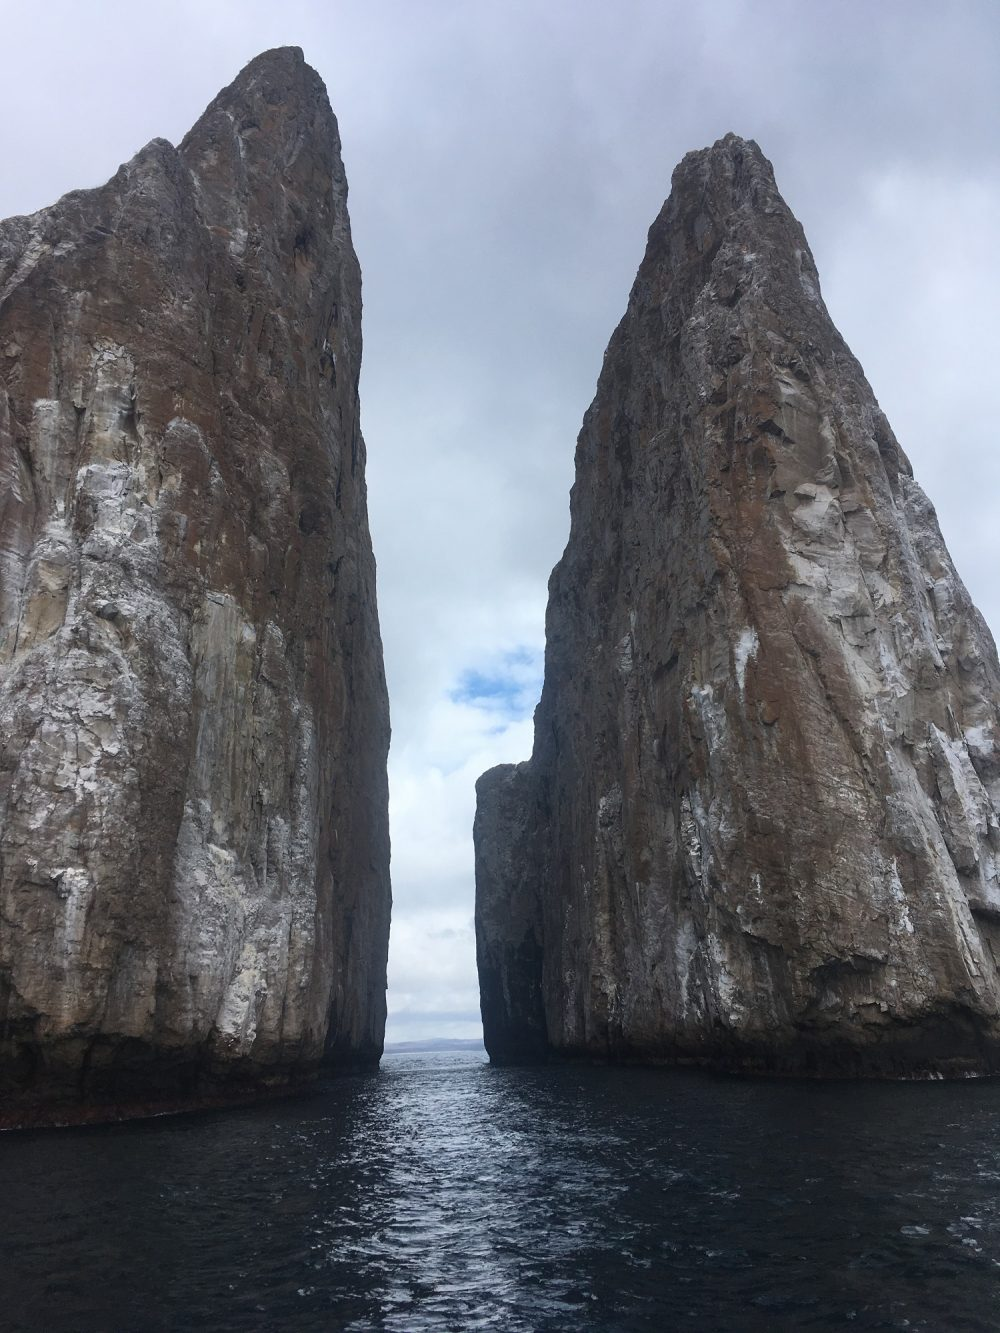 The incredible Kicker Rock dive site © Alix Zelly